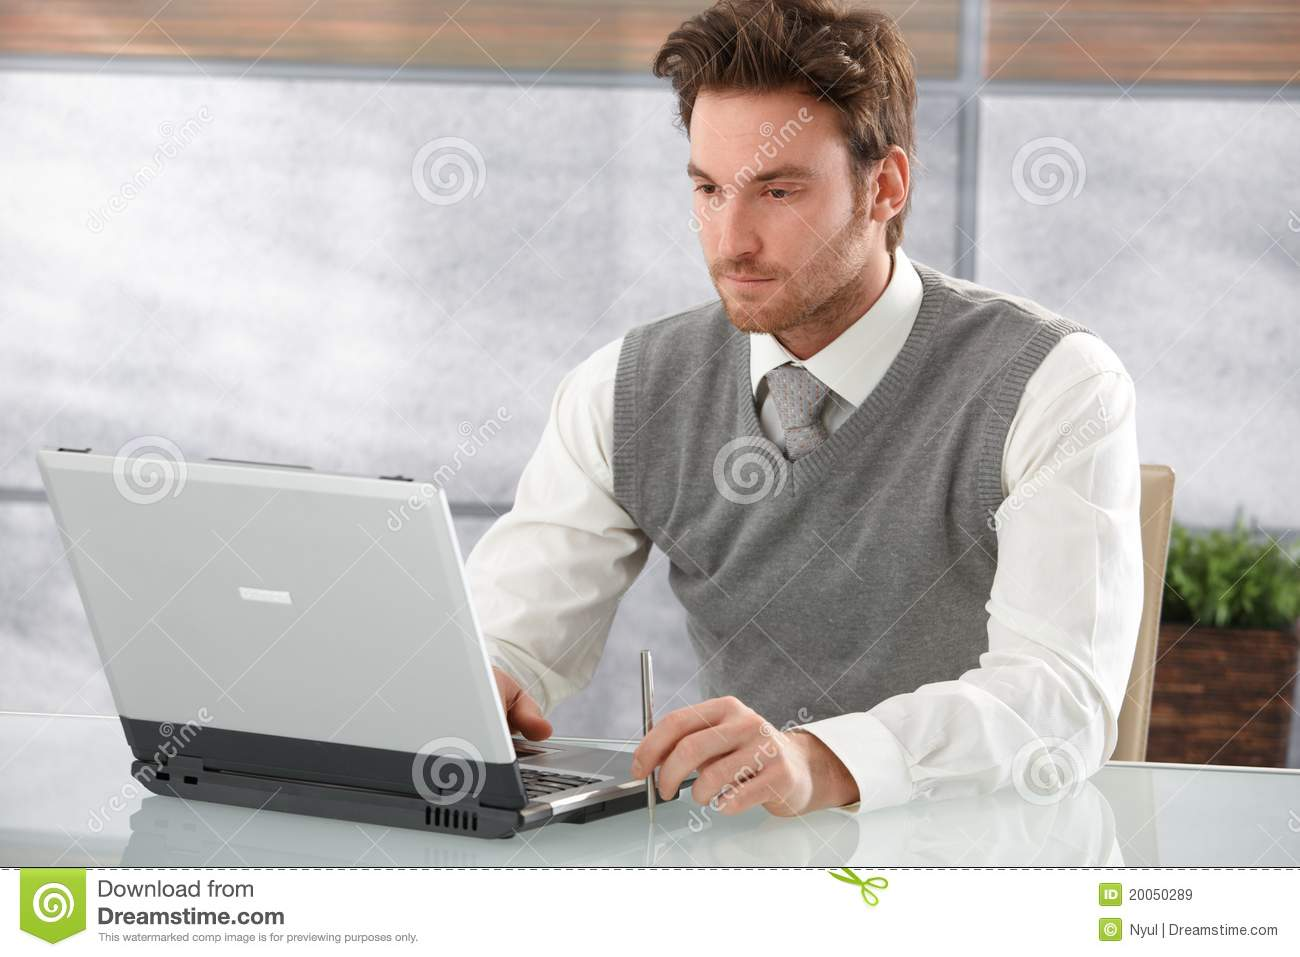 Casual businessman working on laptop